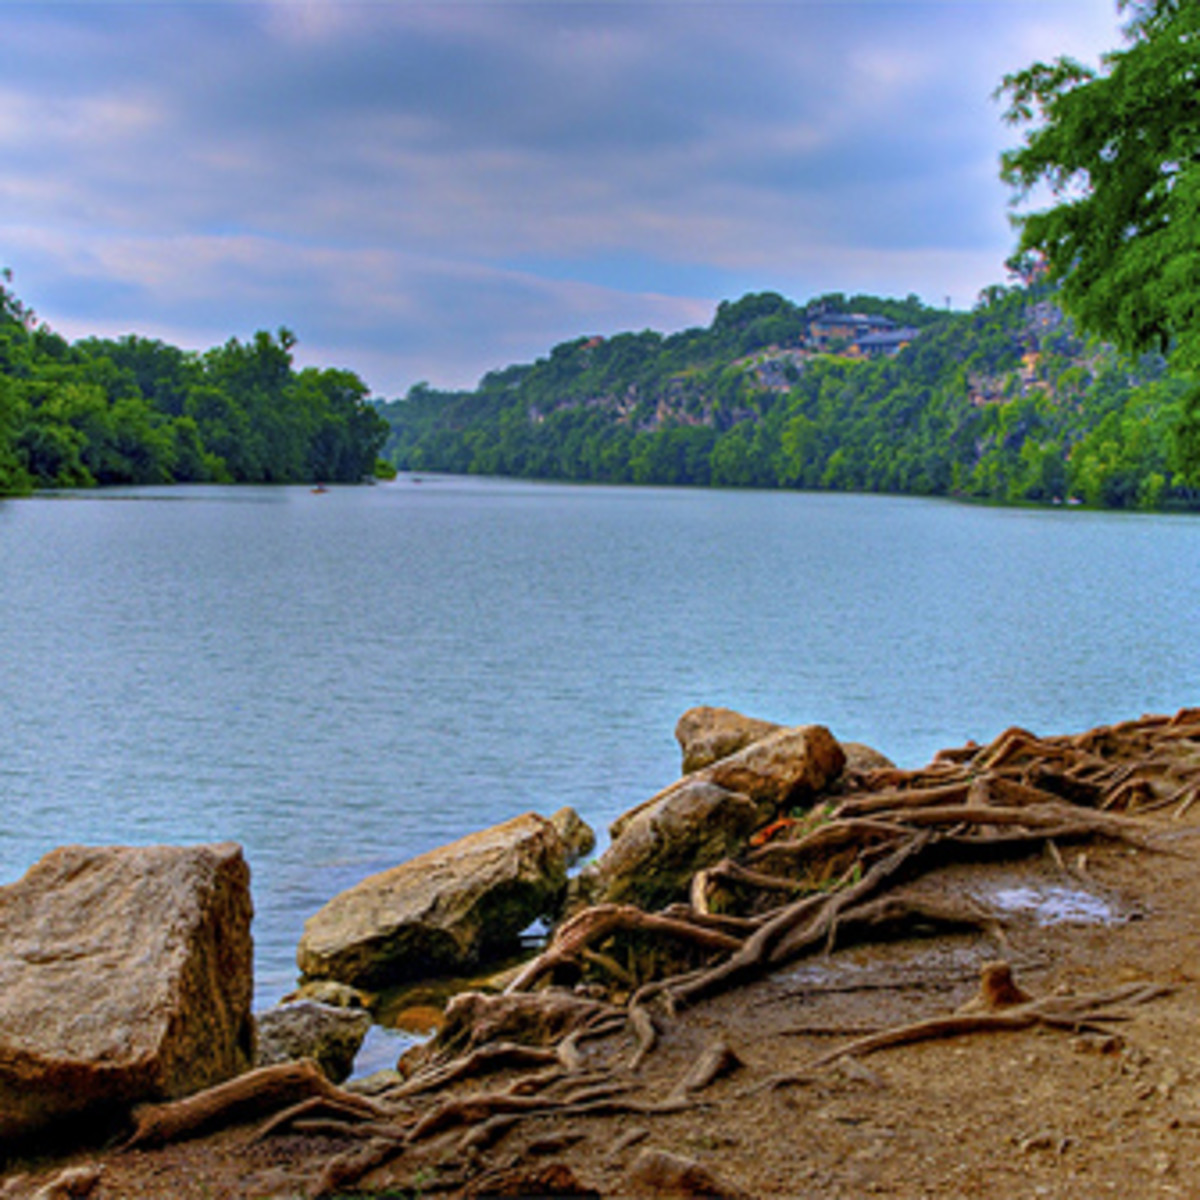 Austin_photo: Places_Outdoors_Red Bud Isle_beach